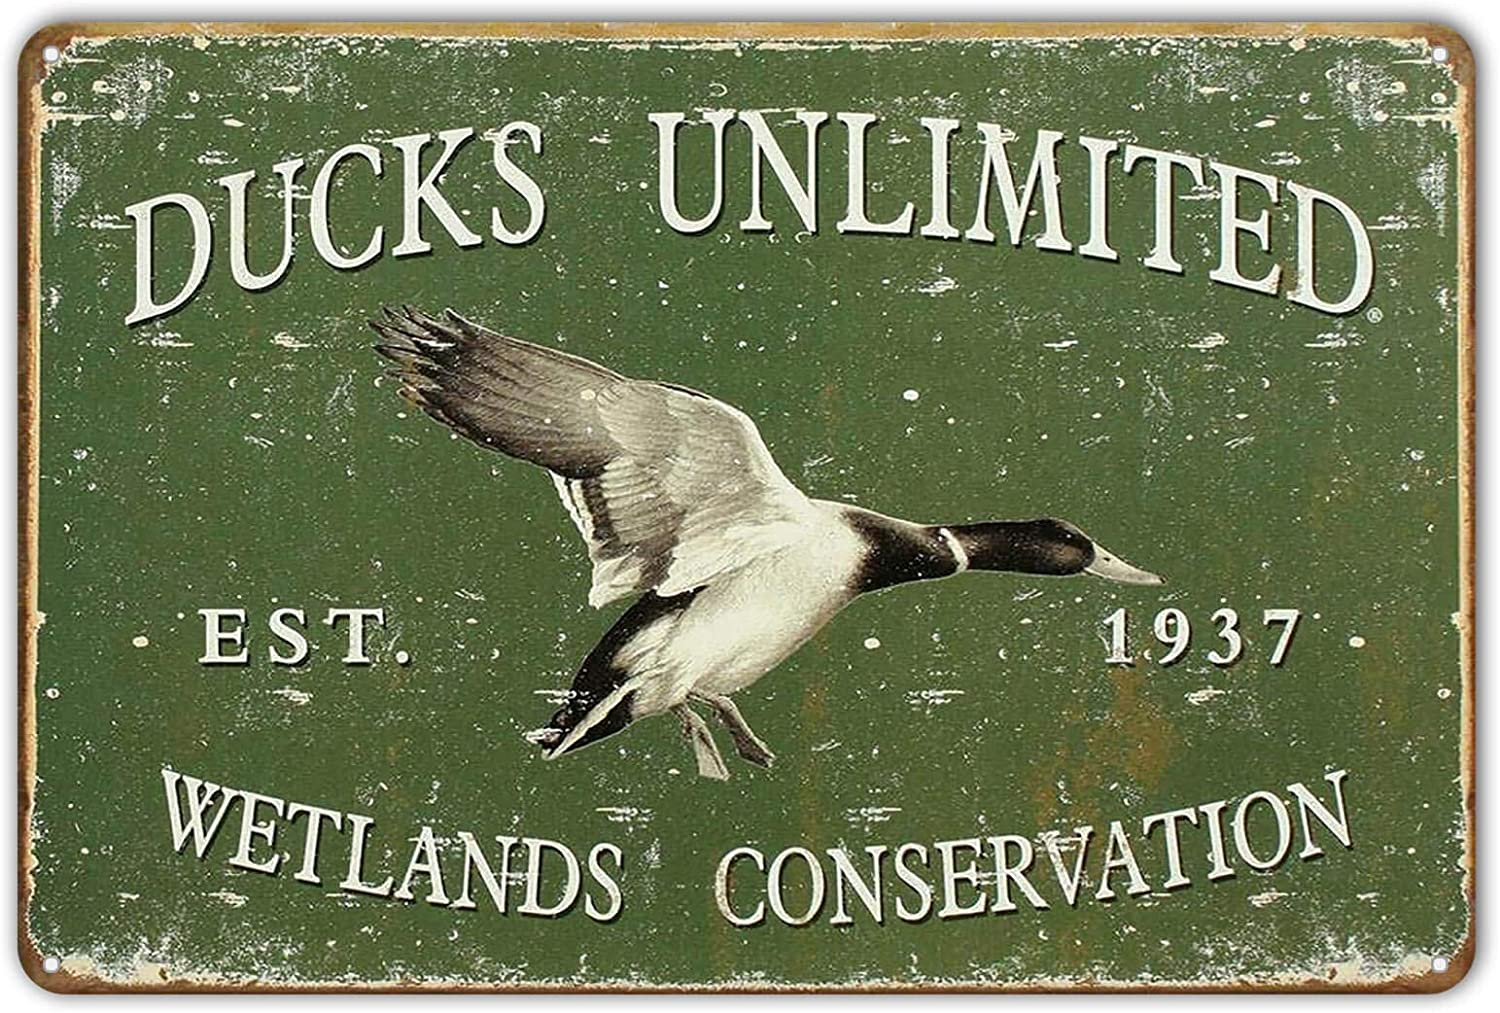 ZYPENG Metal Tin Sign Ducks Unlimited Since 1937 Vintage Style Hunt Cabin Wall Decor 8 x 12 inches